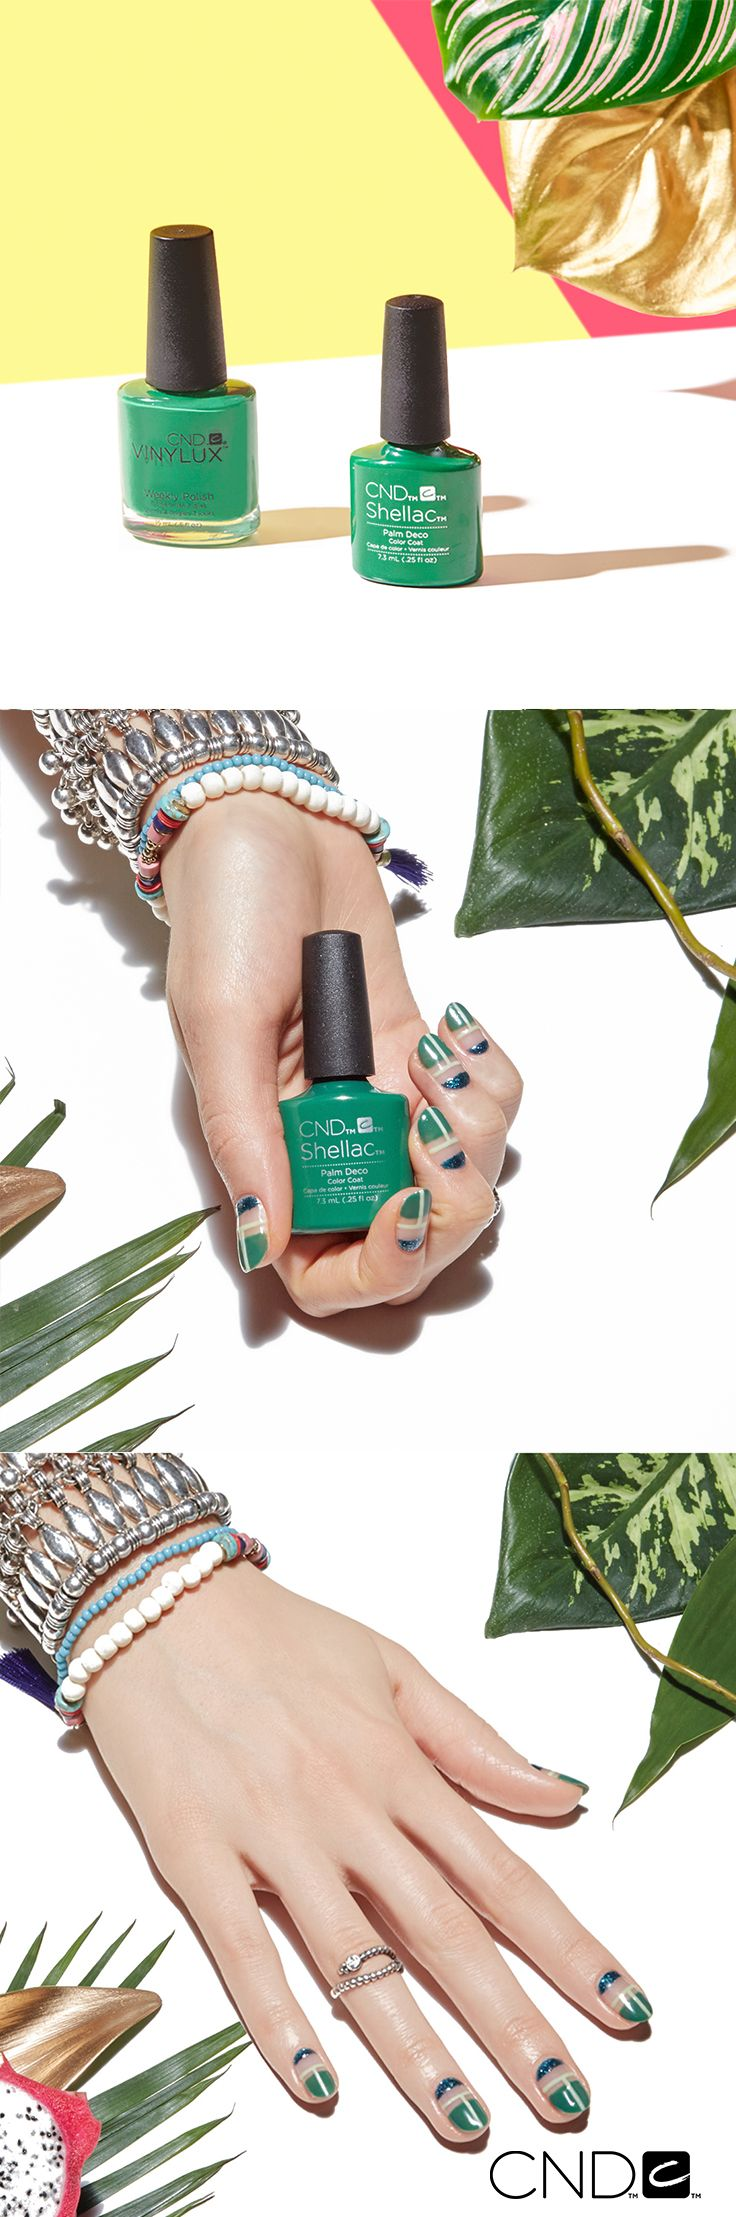 Ask your nail salon for the NEW #CNDRhythmAndHeat Summer nail polish collection. Available in CND Shellac and Vinylux shades.